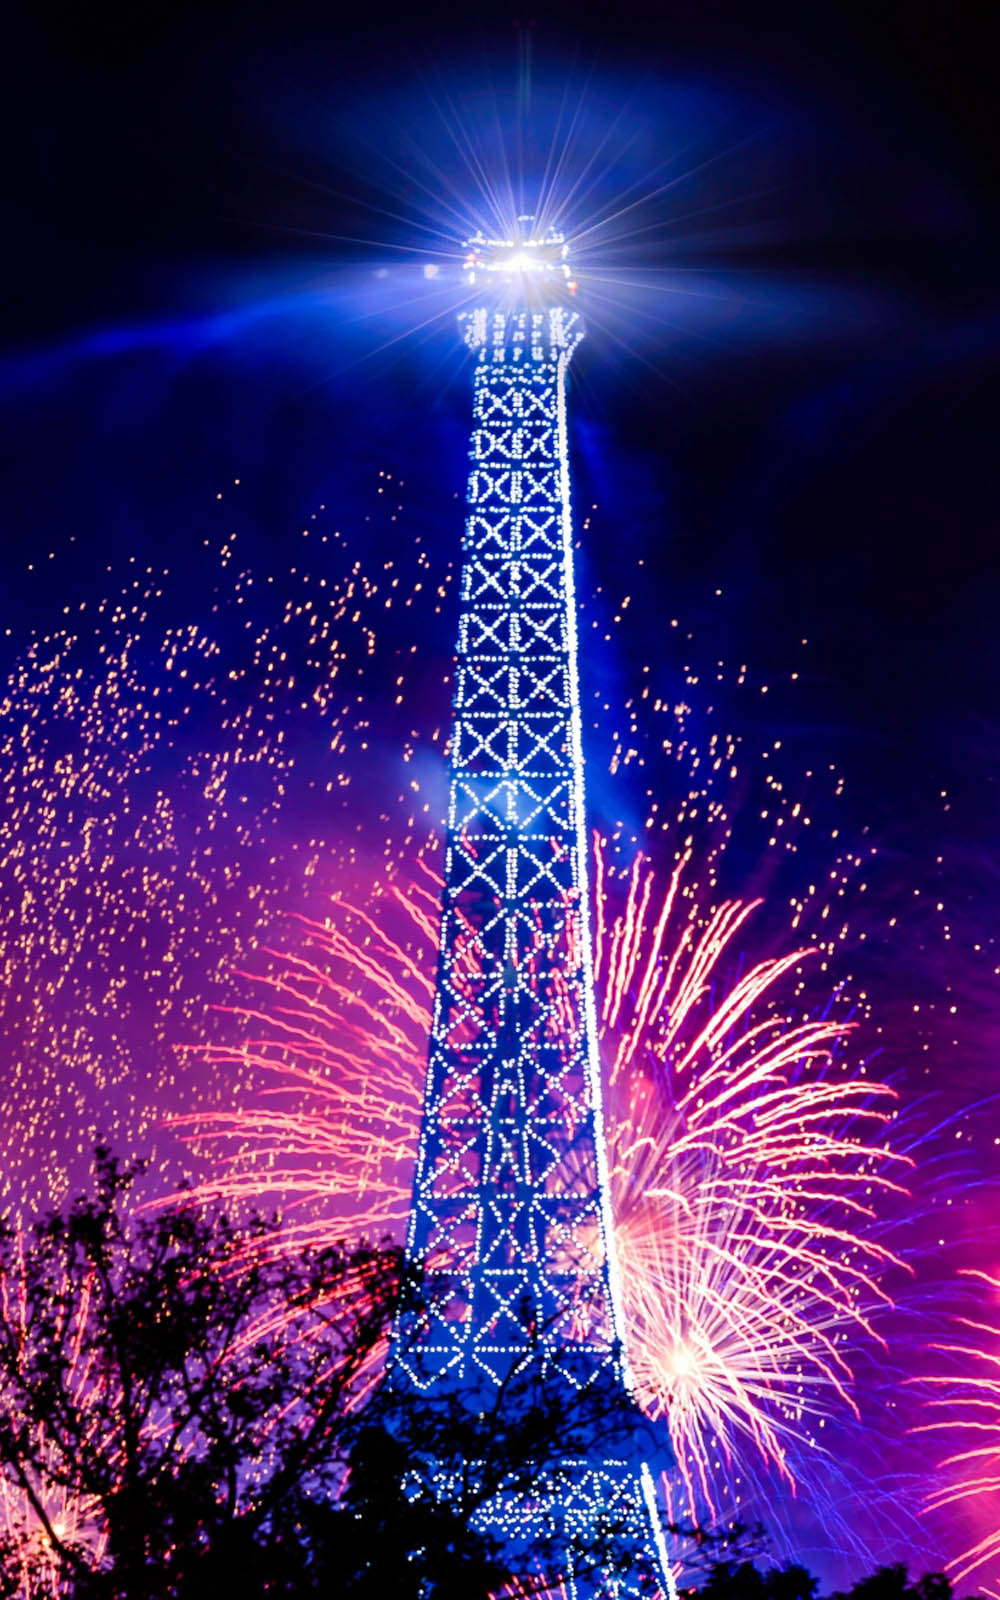 Download Eiffel Tower Holiday Fireworks Free Pure 4k Ultra